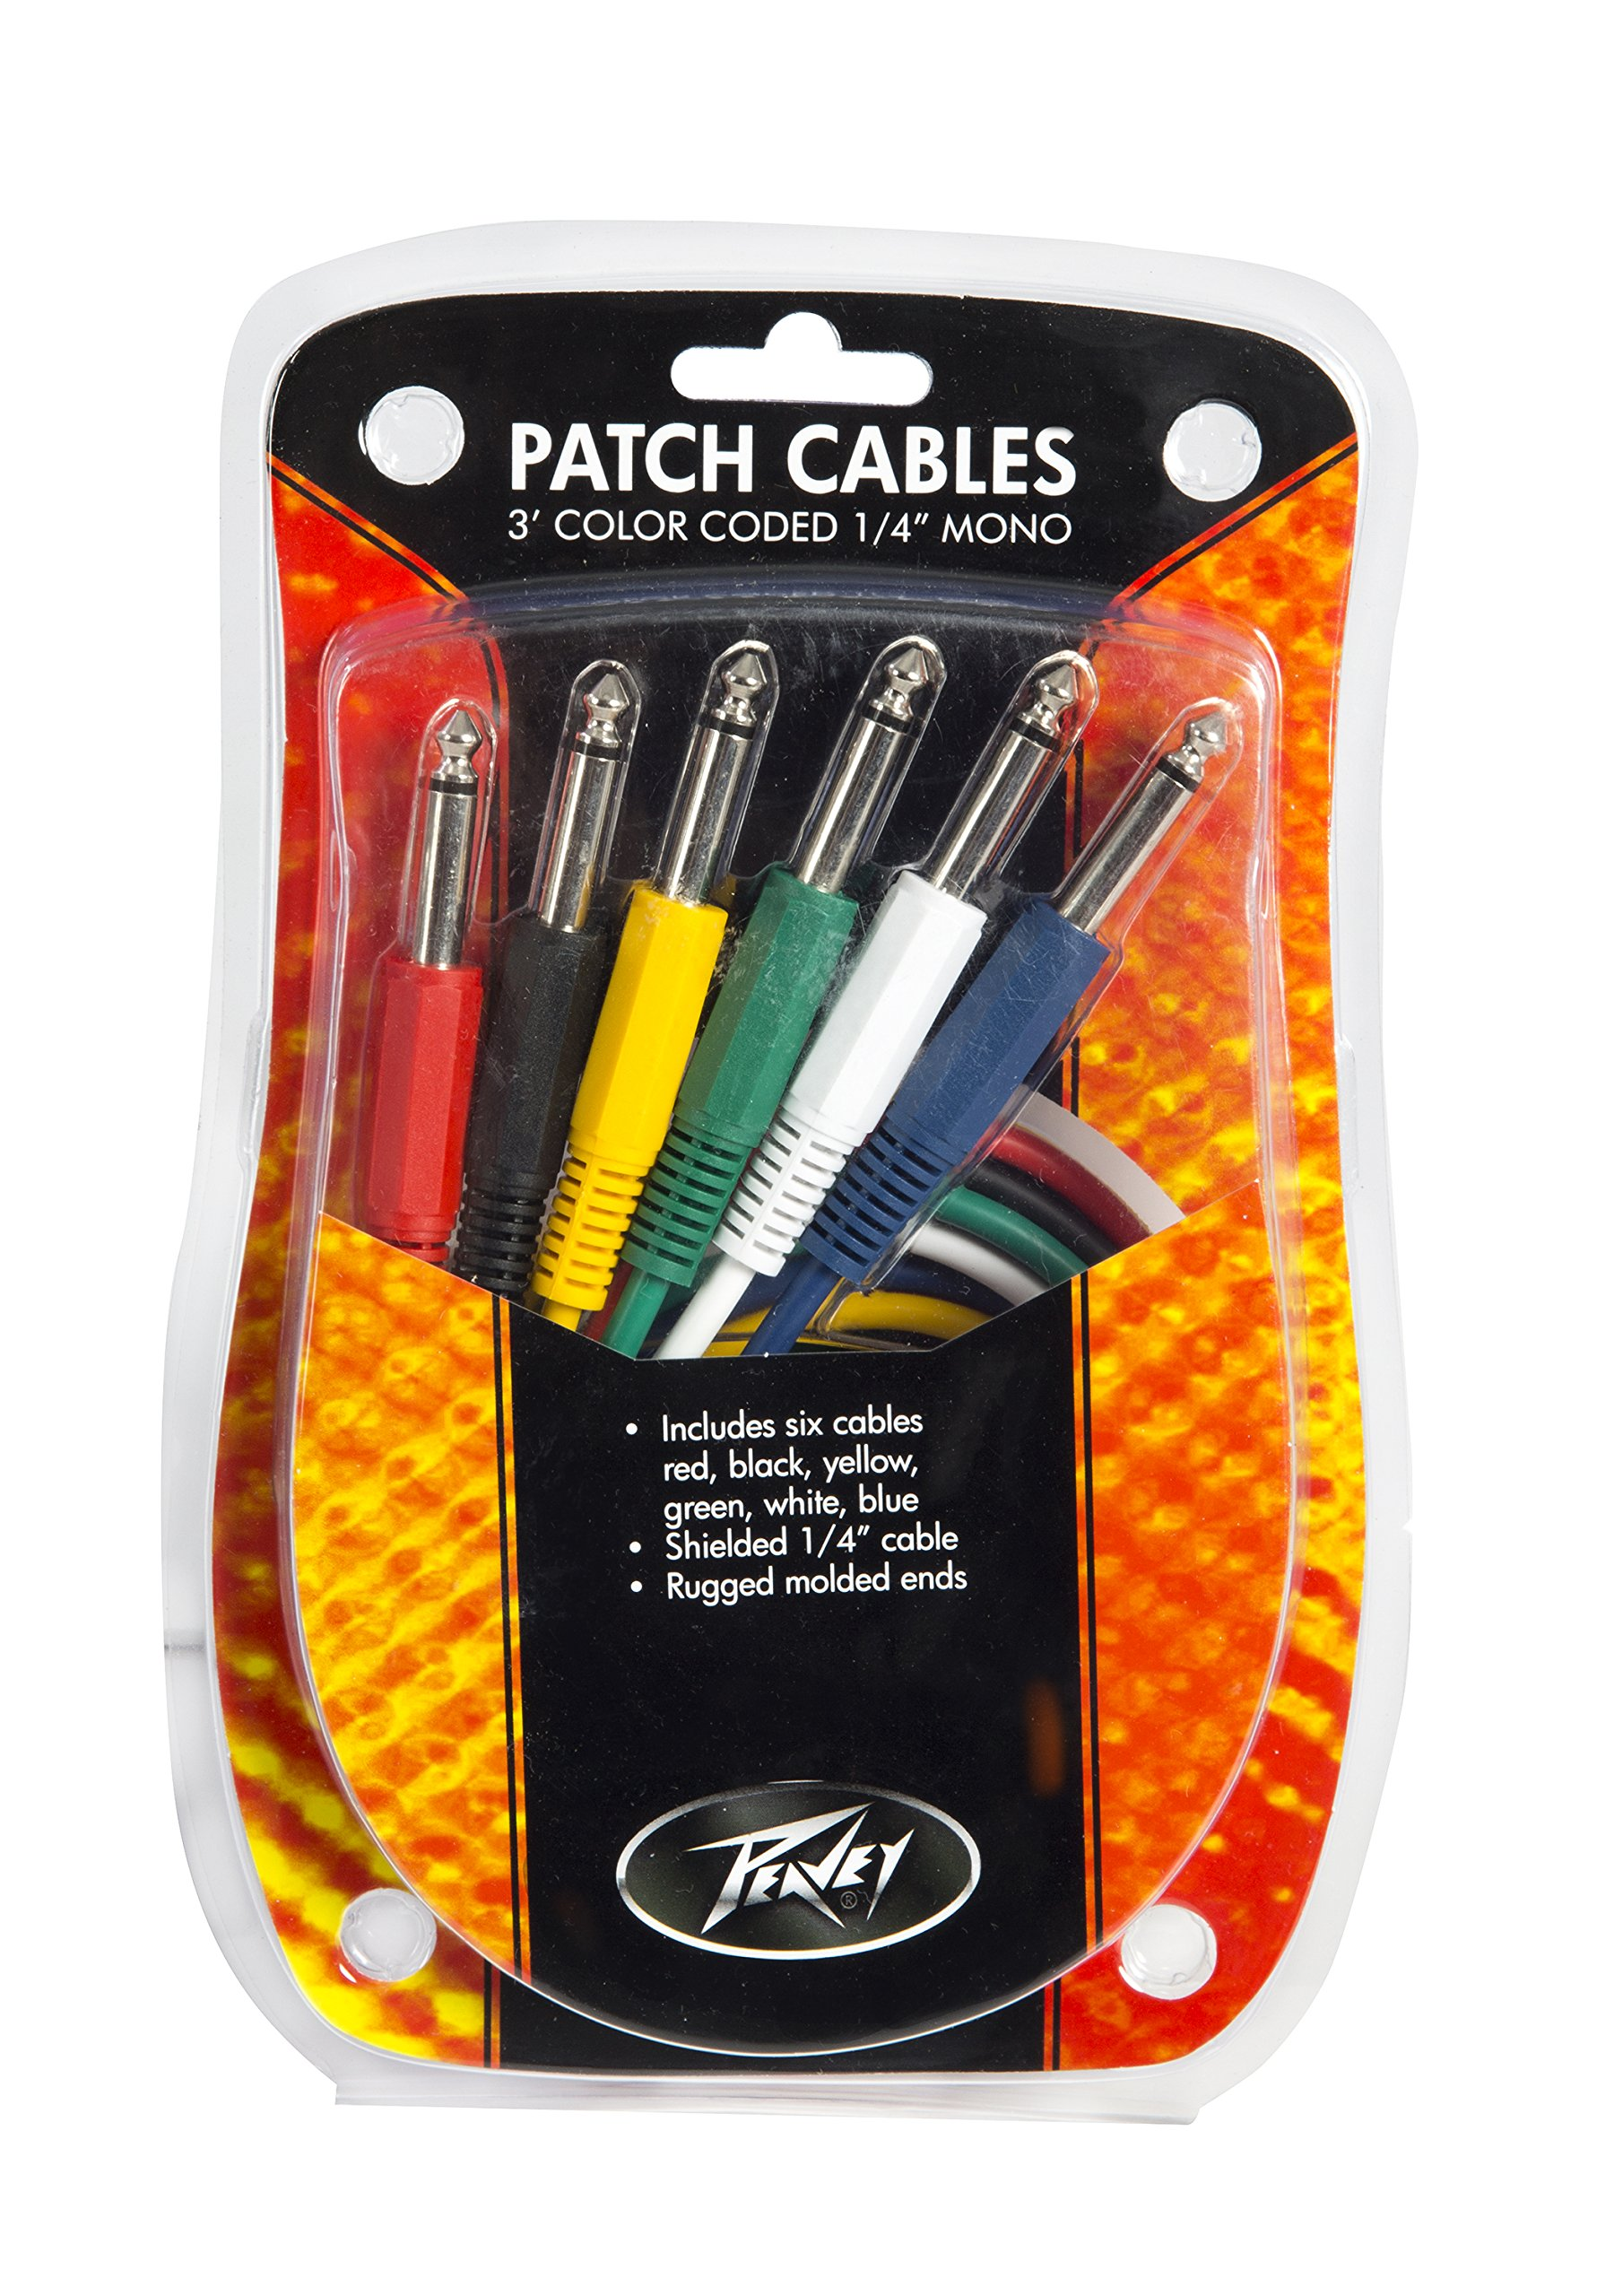 Peavey 3 Foot Colored 1/4 Inch Patch Cables, 6 Pack